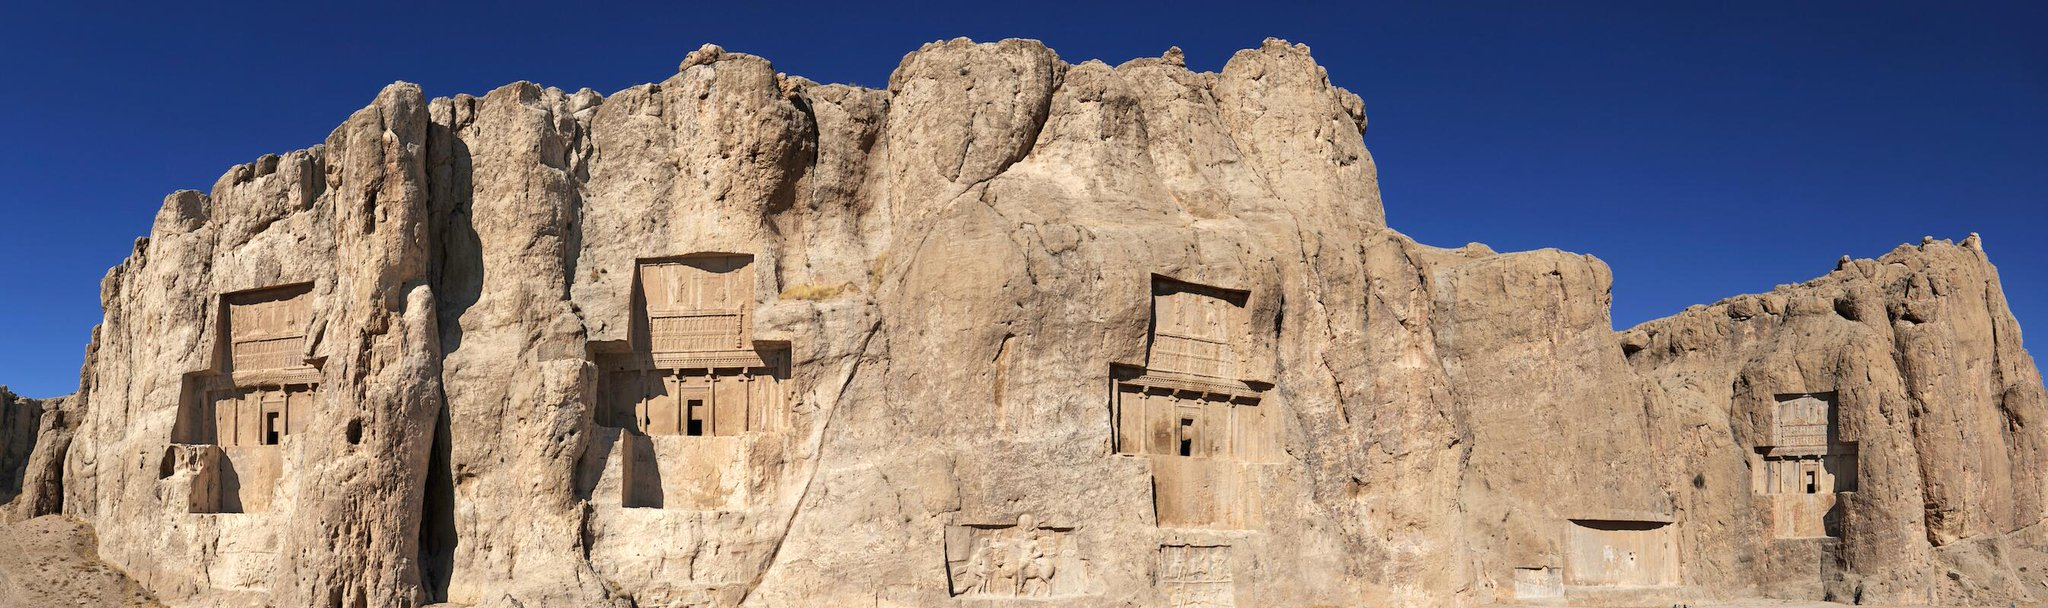 Naqsh-e Rostam, a Persian necropolis near Persepolis, Iran. Tombs of Darius and Xerxes carved in the cliff side. http://t.co/Fwv32TtxR1